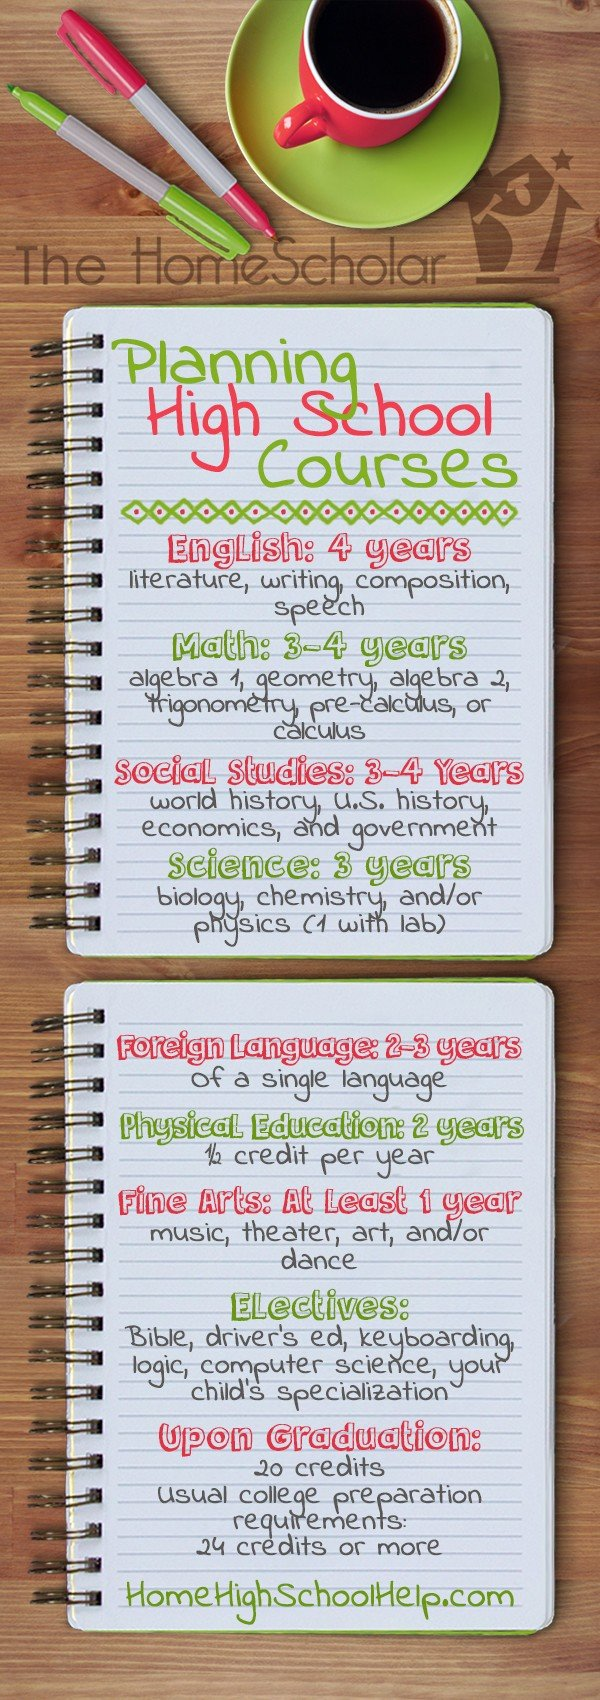 Planning High School Courses #Homeschool @TheHomeScholar